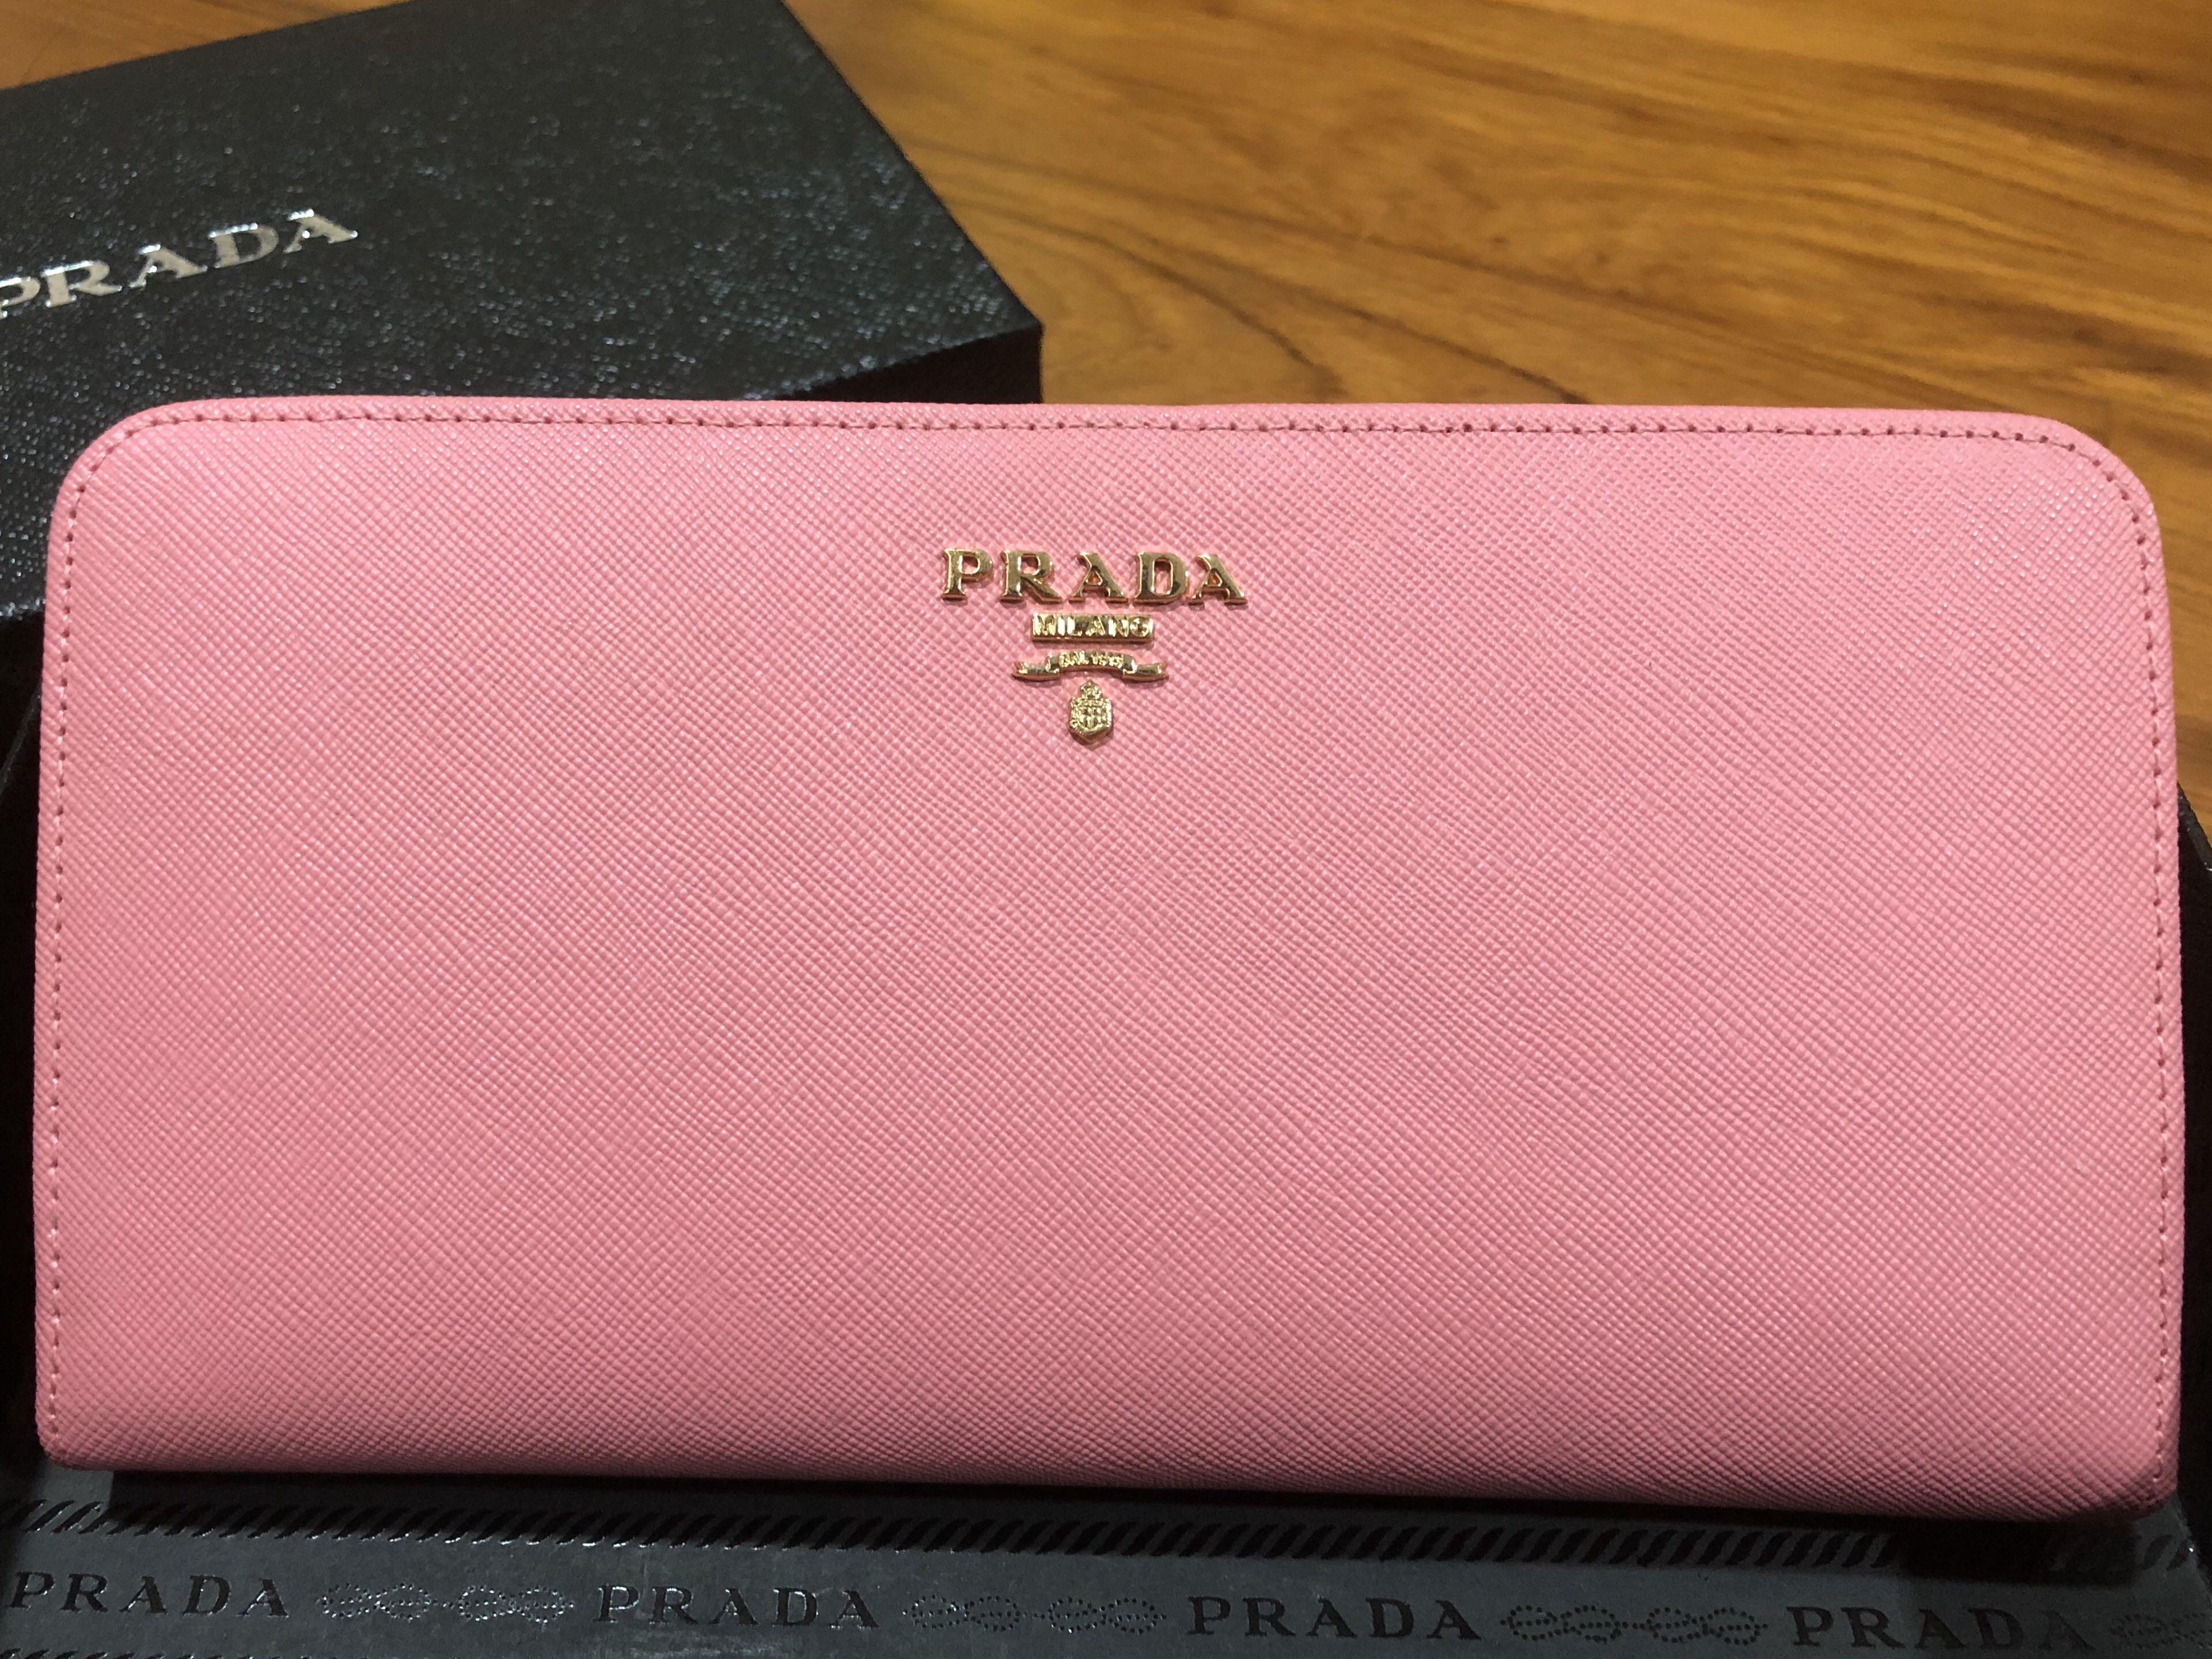 BN PRADA CLUTCH LONG PINK WALLET / SAFFIANO LEATHER DOUBLE SNAP TRAVEL WALLET / CLUTCH SIZE  (see last pic) 🌸🌸🌸 COMES WITH PRADA BOX🥰